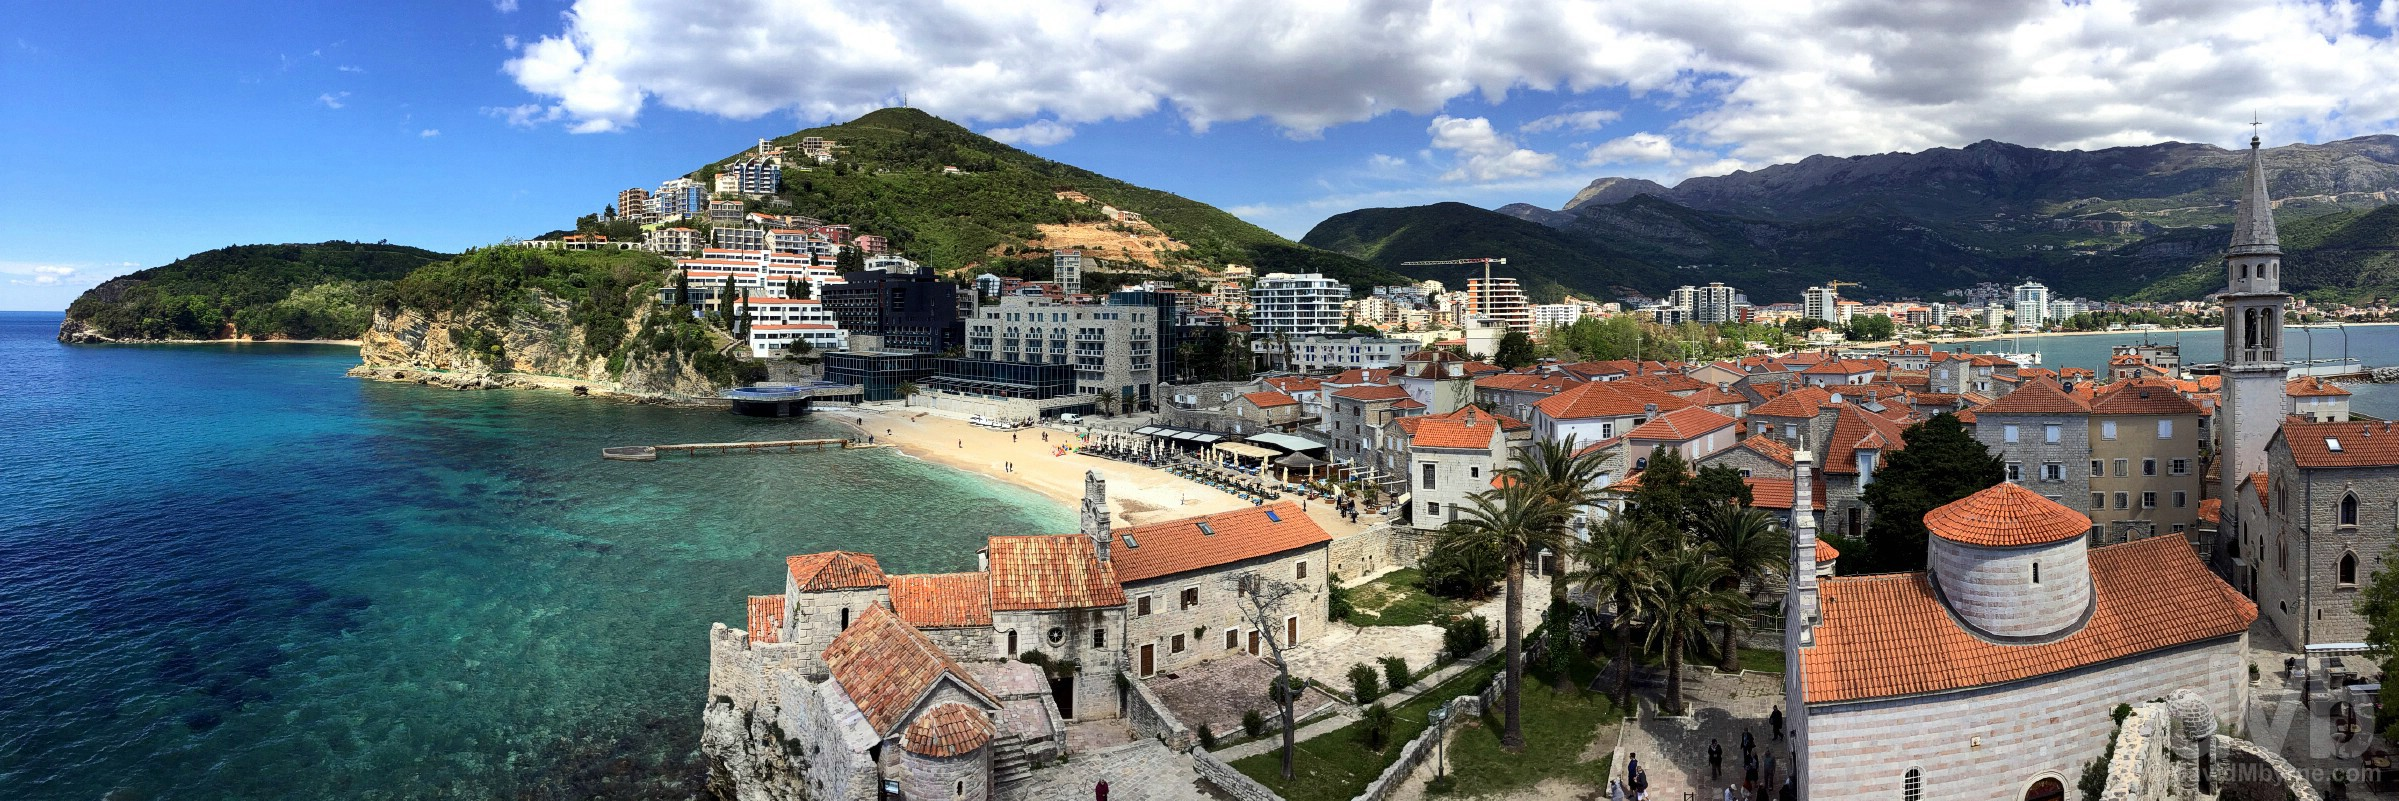 Budva as seen from the walls of the Citadela Fortress. Budva, Montenegro. April 21, 2017.